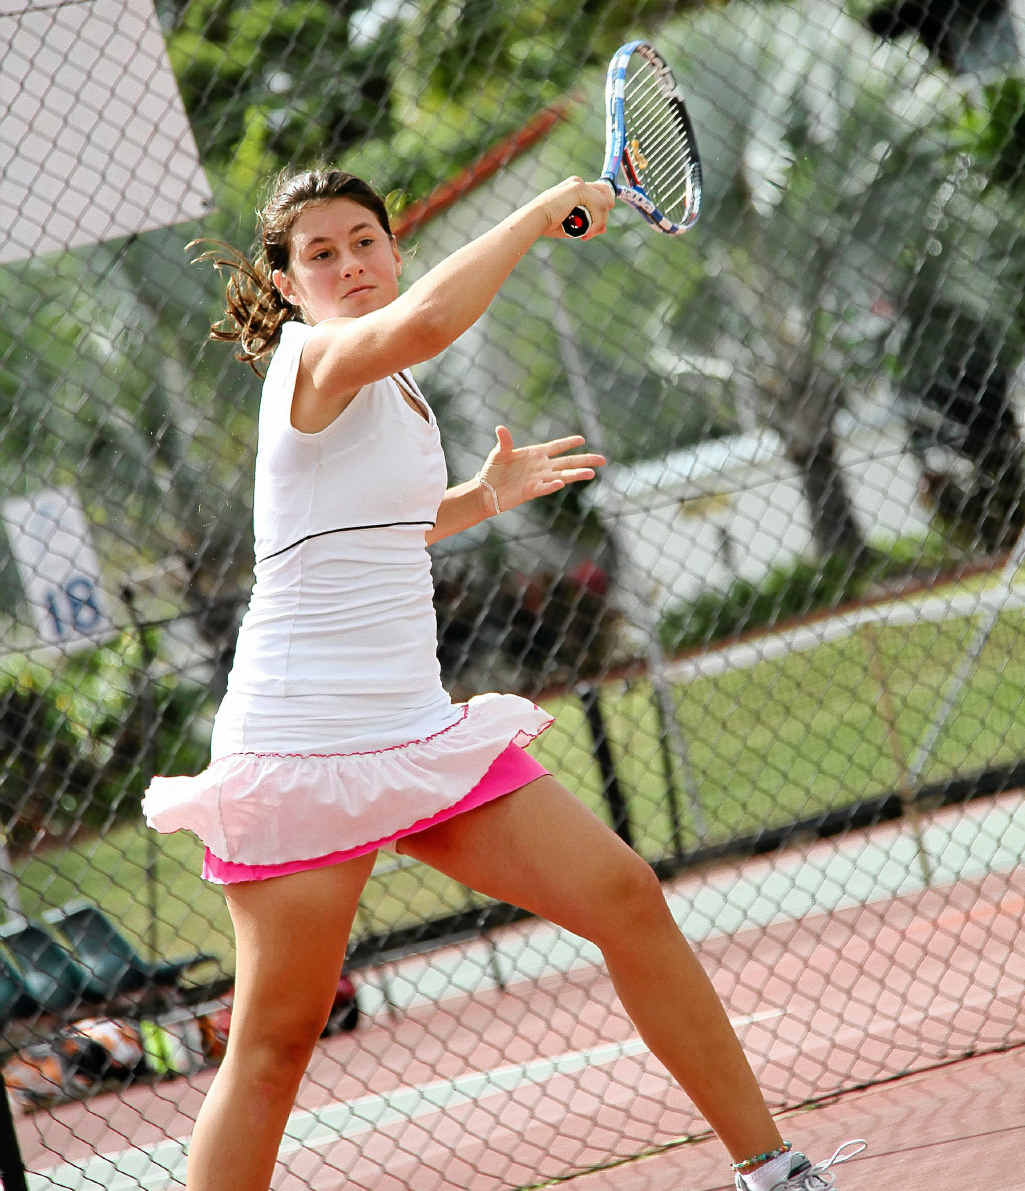 Sarah Tomic competes in the Gladstone Hardcourt Championships last year, showing the style that won her a national title on the weekend.